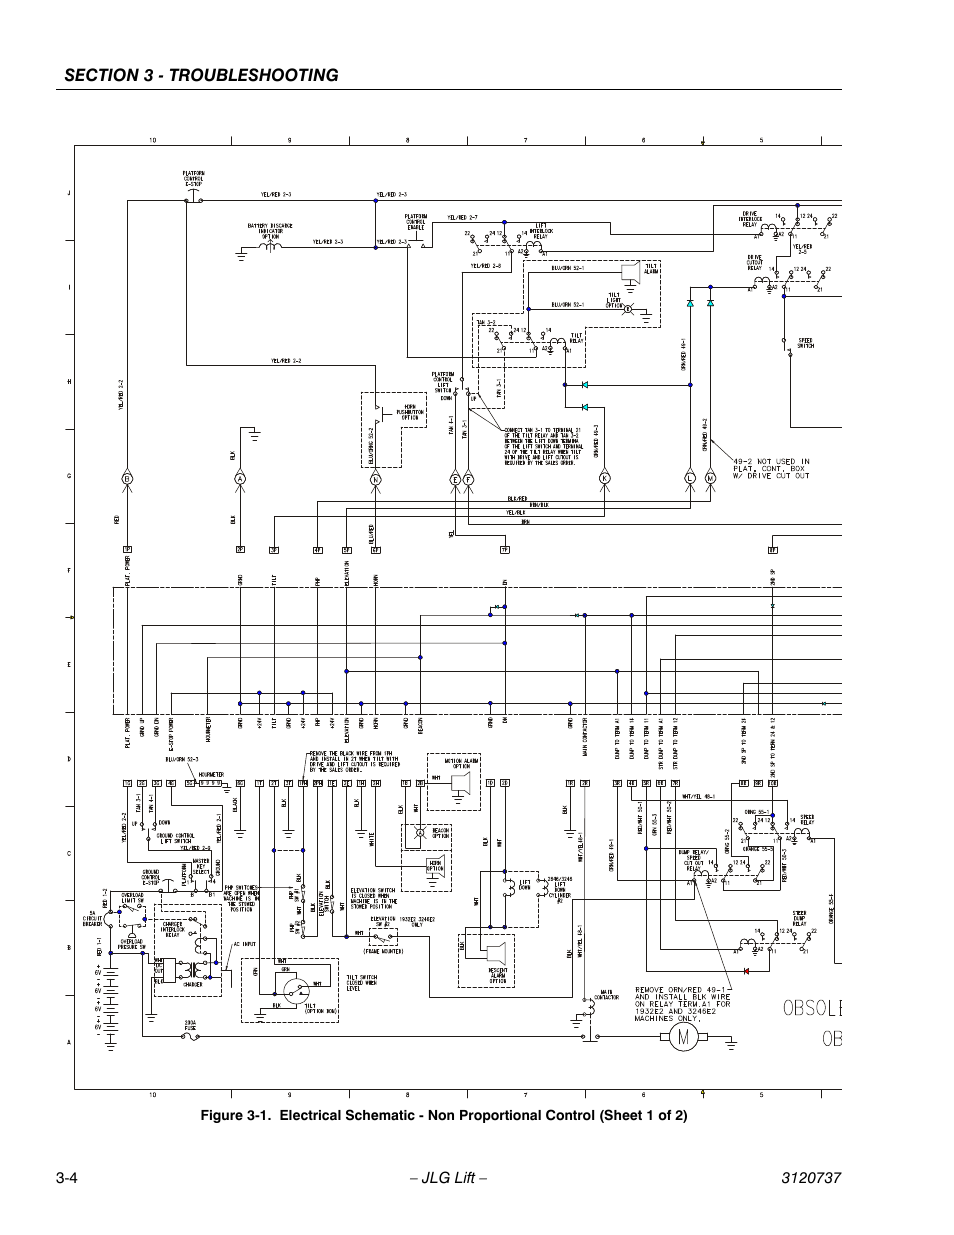 jlg 2032e2 wiring diagram jlg 2032e2 wiring diagram 25 wiring diagram images